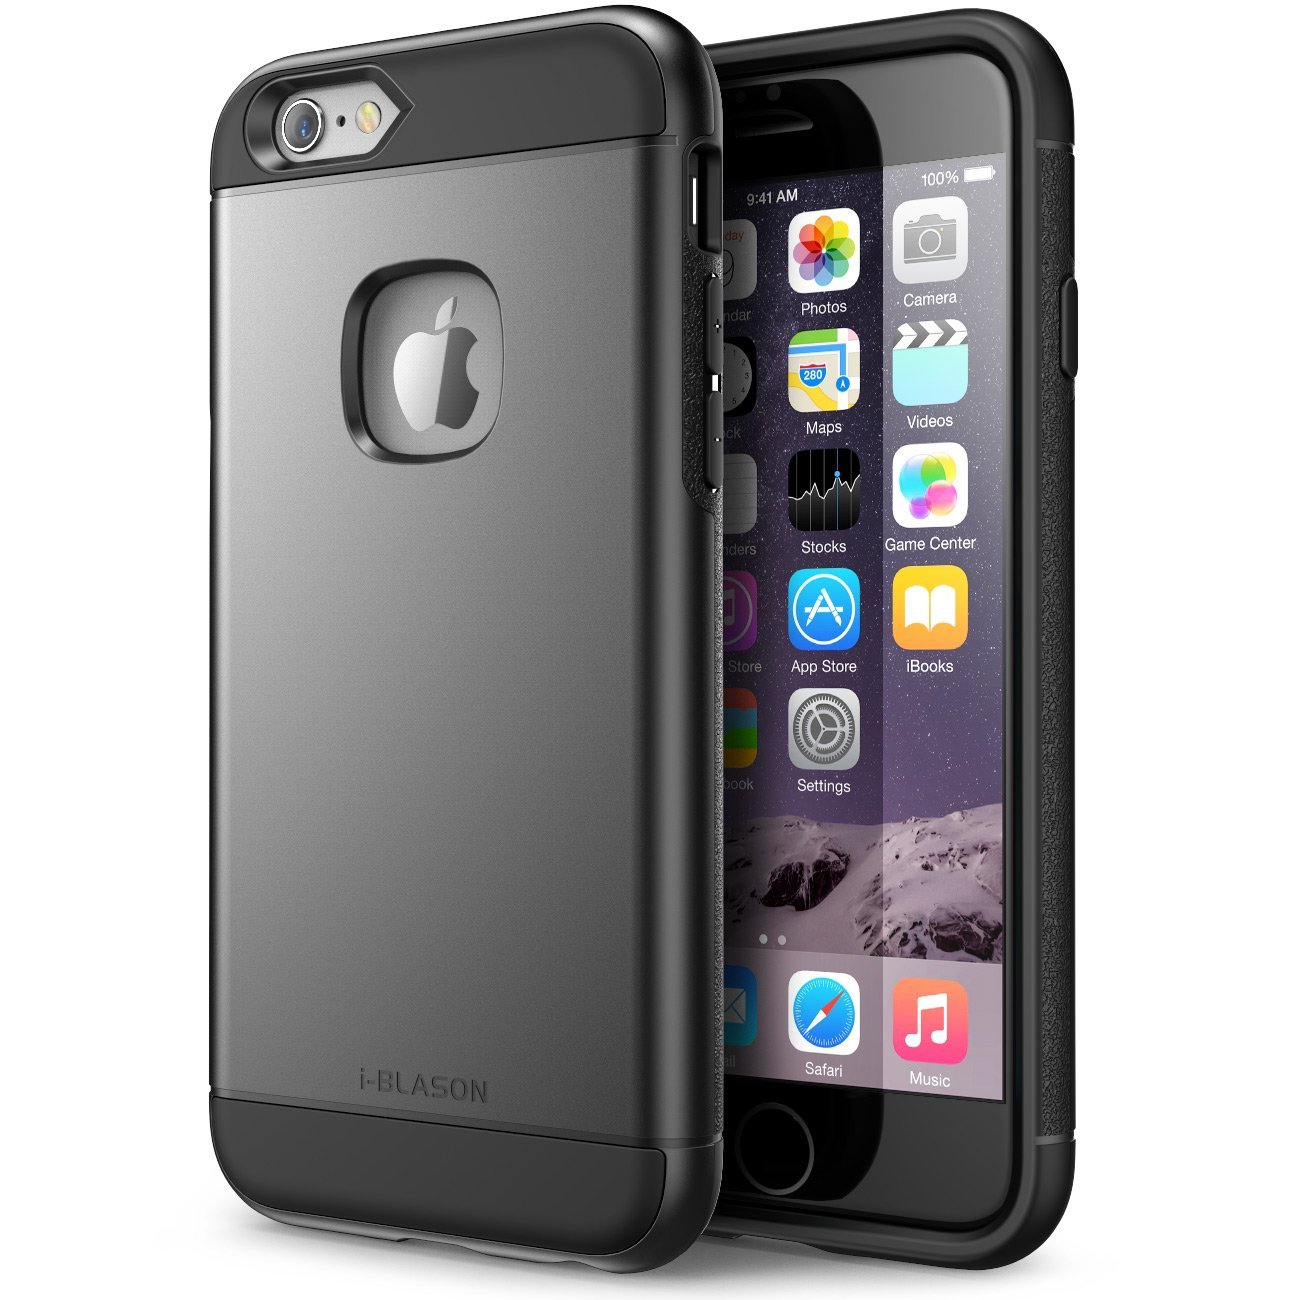 iPhone 6s Plus Case, i-Blason Unity [Dual Layer] Apple iPhone 6 Plus Case 5.5 Inch Cover [Ultra Slim] Armored Hybrid TPU Cover / Hard Outter Shell (Black)